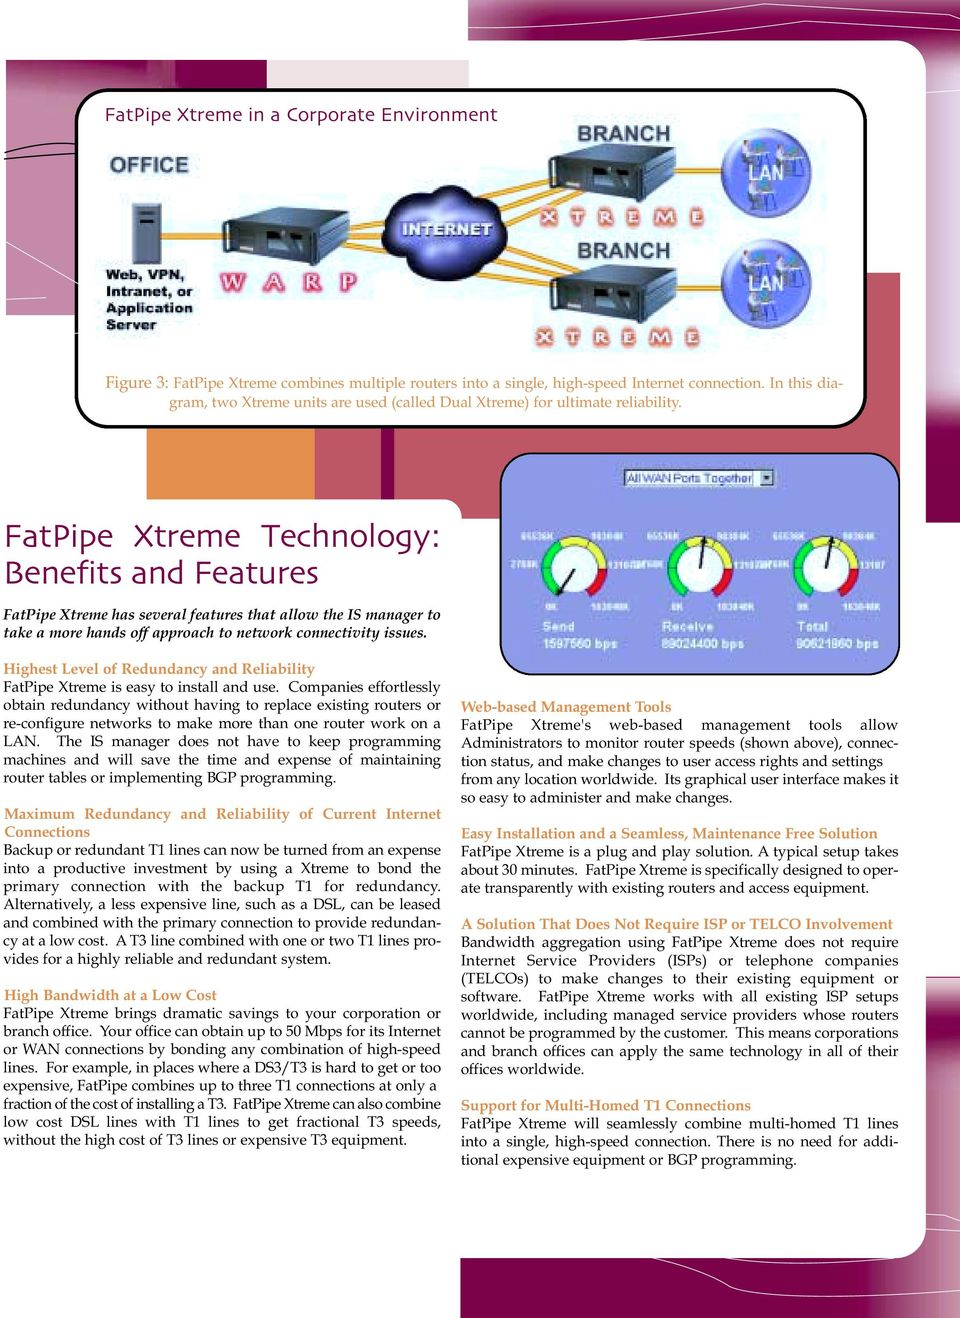 FatPipe Xtreme Technology: Benefits and Features FatPipe Xtreme has several features that allow the IS manager to take a more hands off approach to network connectivity issues.